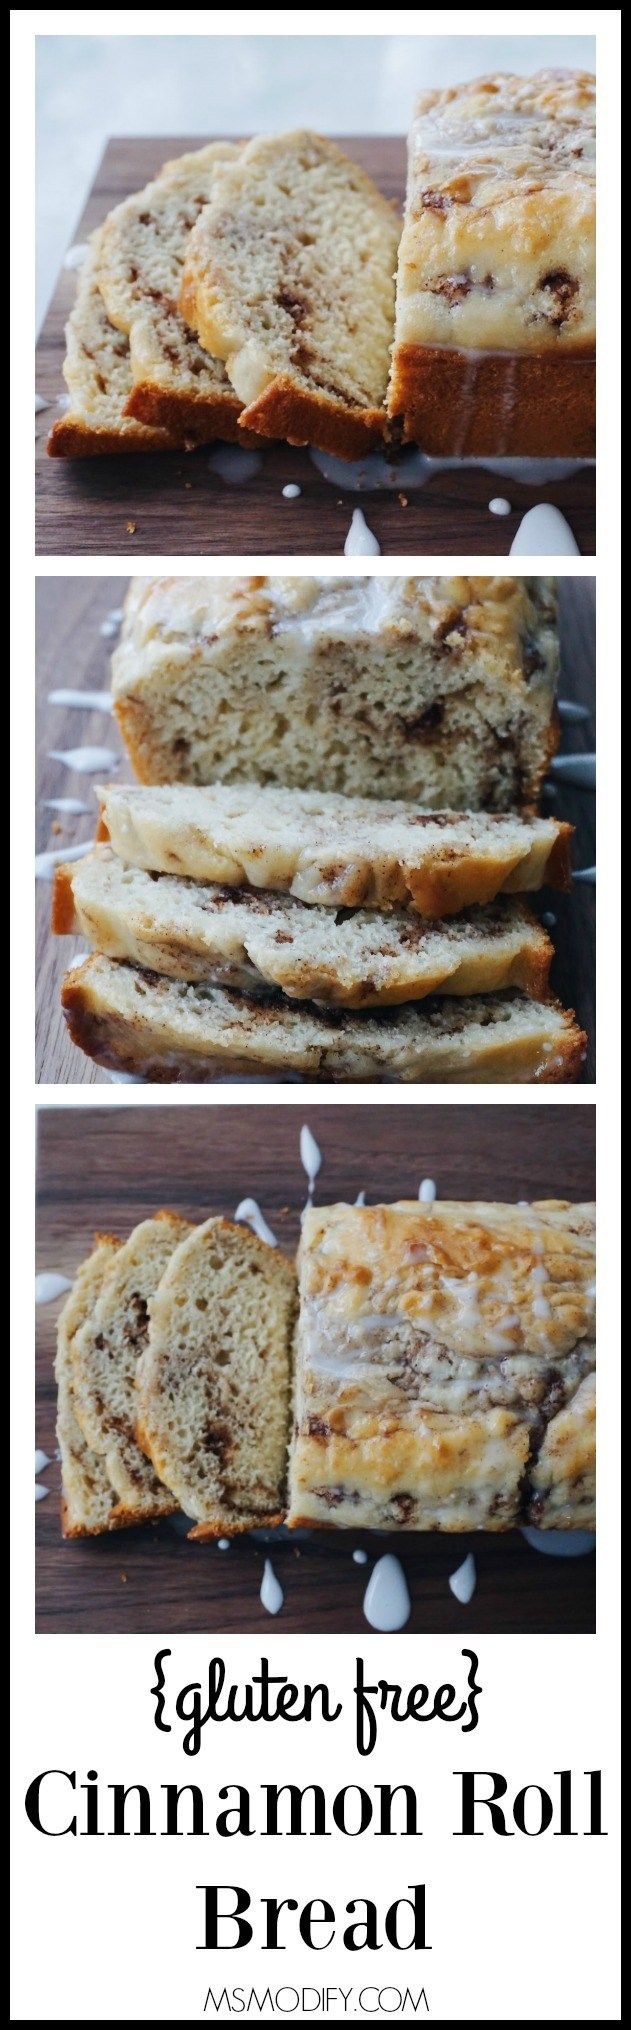 Easy and quick gluten free cinnamon roll bread with no yeast required! If you're gluten free, you no longer need to miss out on flavor with this gluten free cinnamon roll bread!